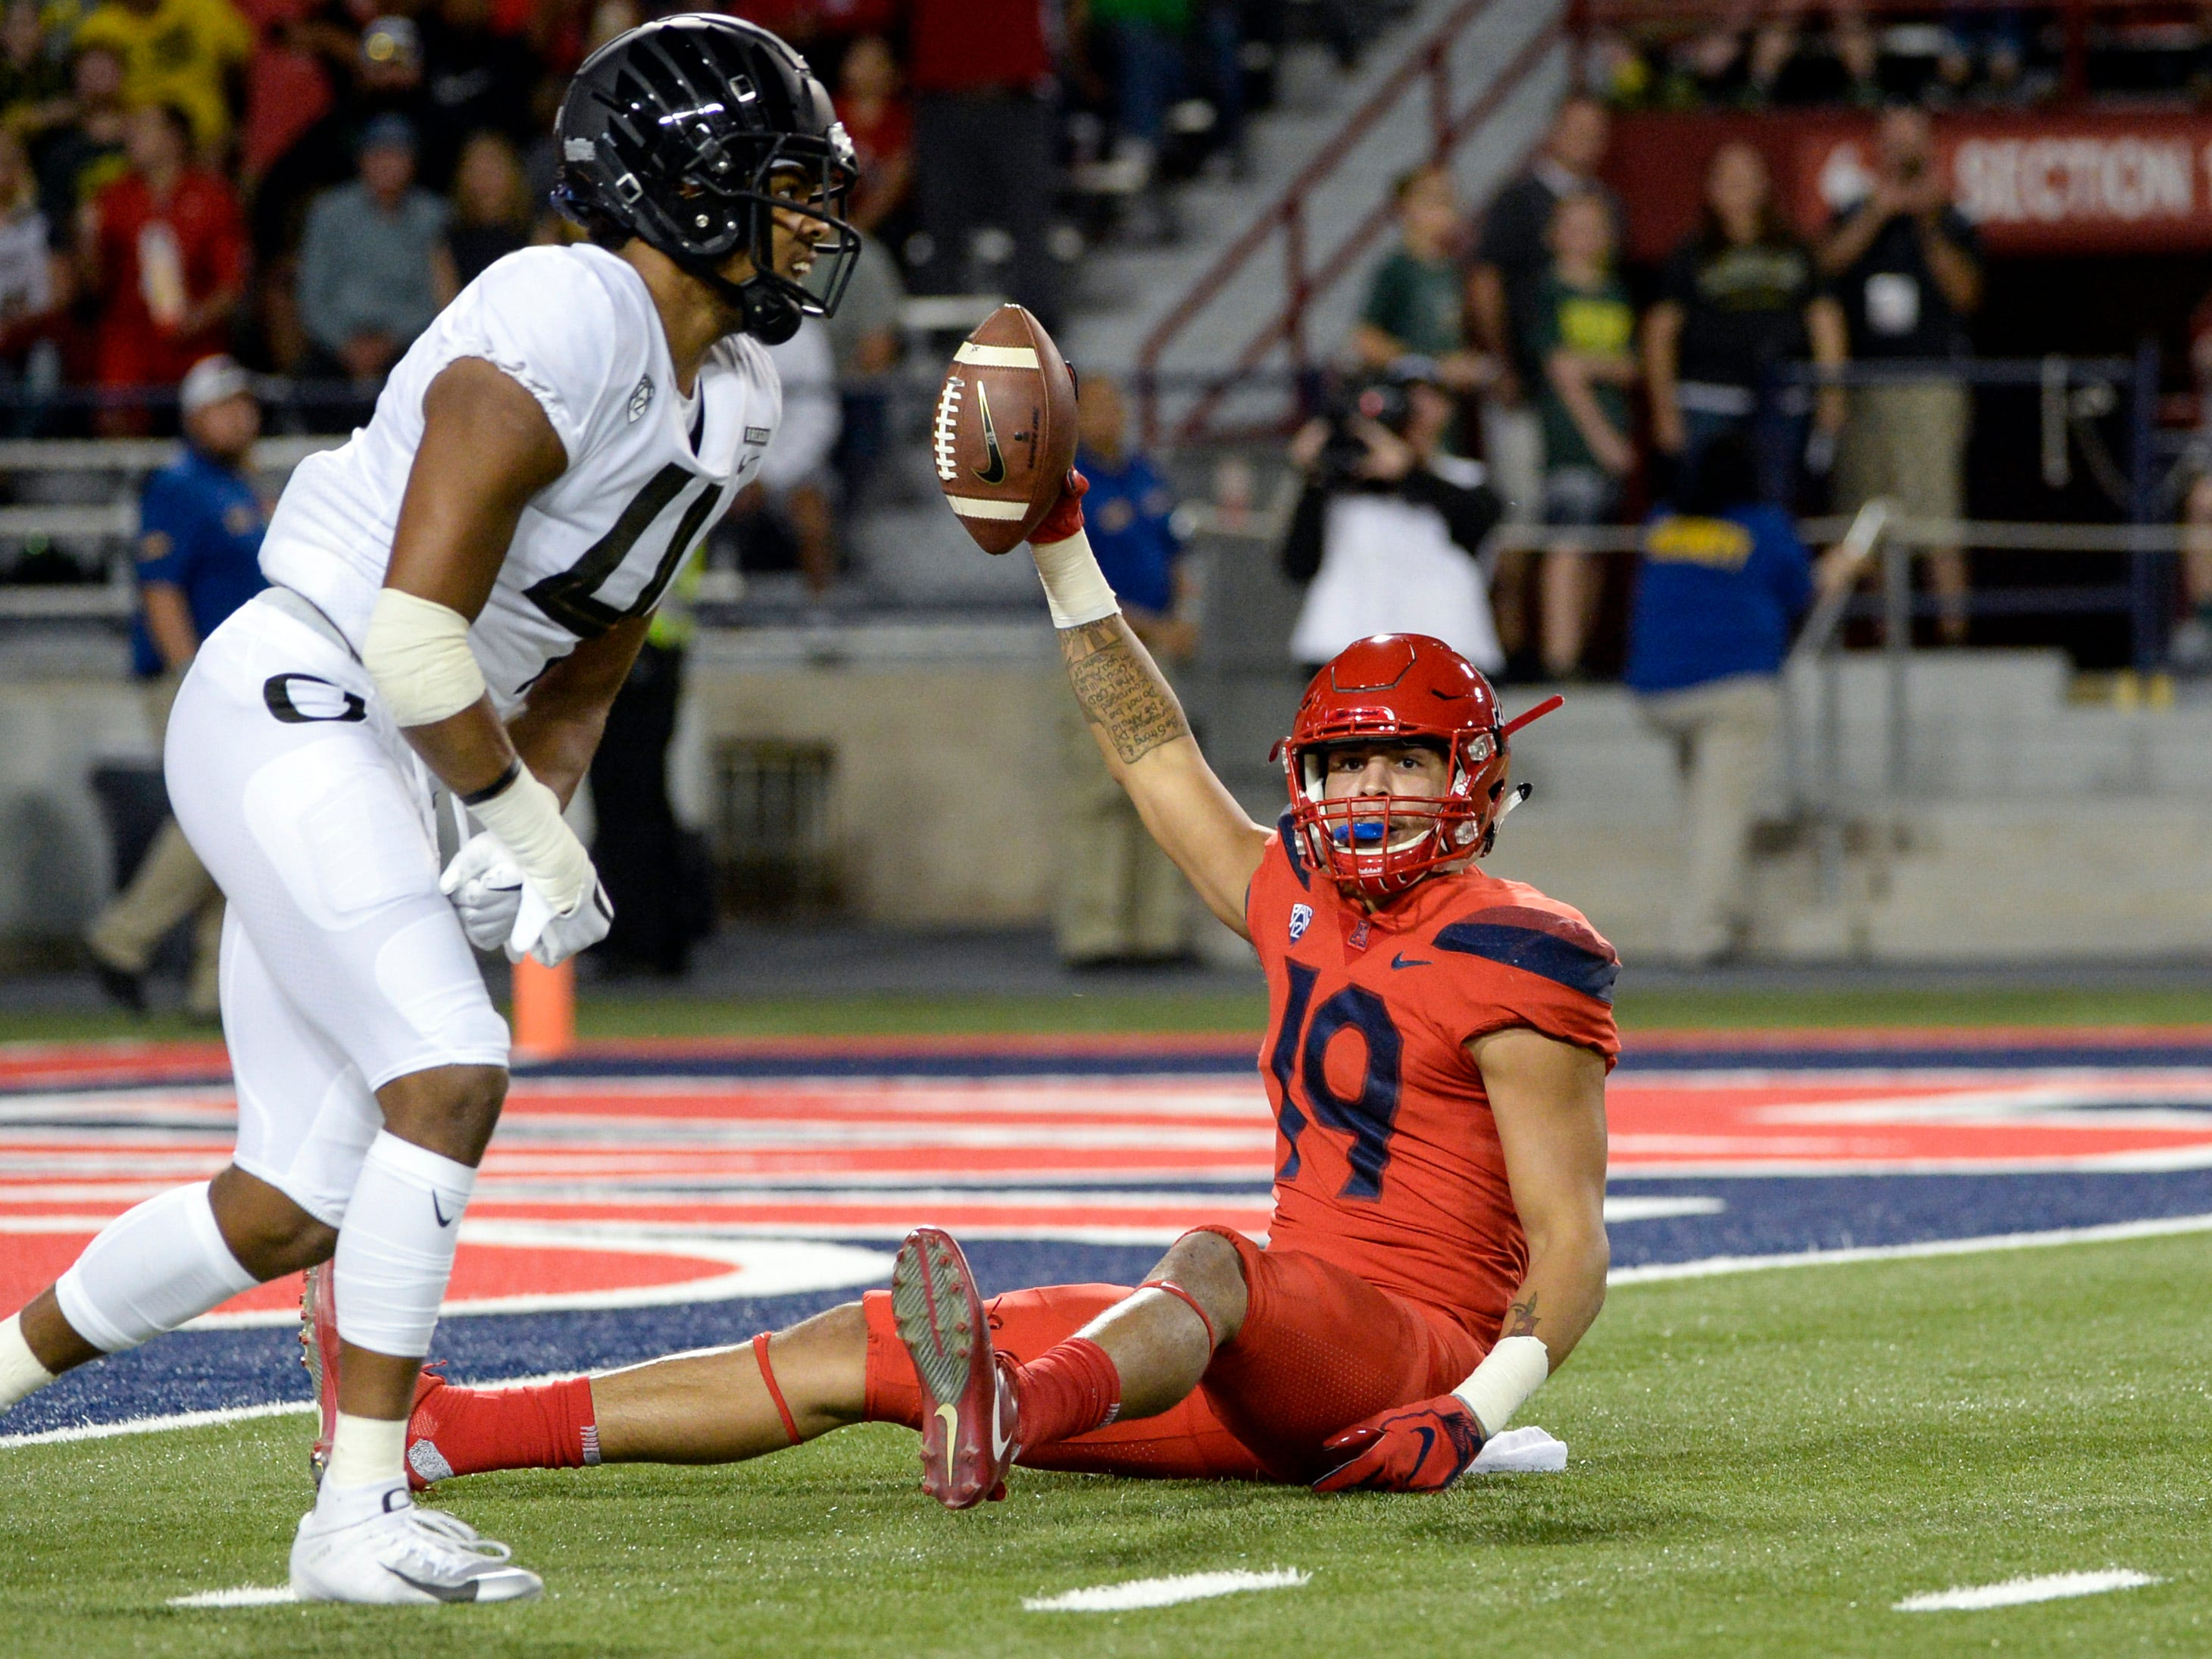 Oct 27, 2018; Tucson, AZ, USA; Arizona Wildcats wide receiver Shawn Poindexter (19) reacts to a call next to Oregon Ducks cornerback Thomas Graham Jr. (4) during the first half at Arizona Stadium. Mandatory Credit: Casey Sapio-USA TODAY Sports